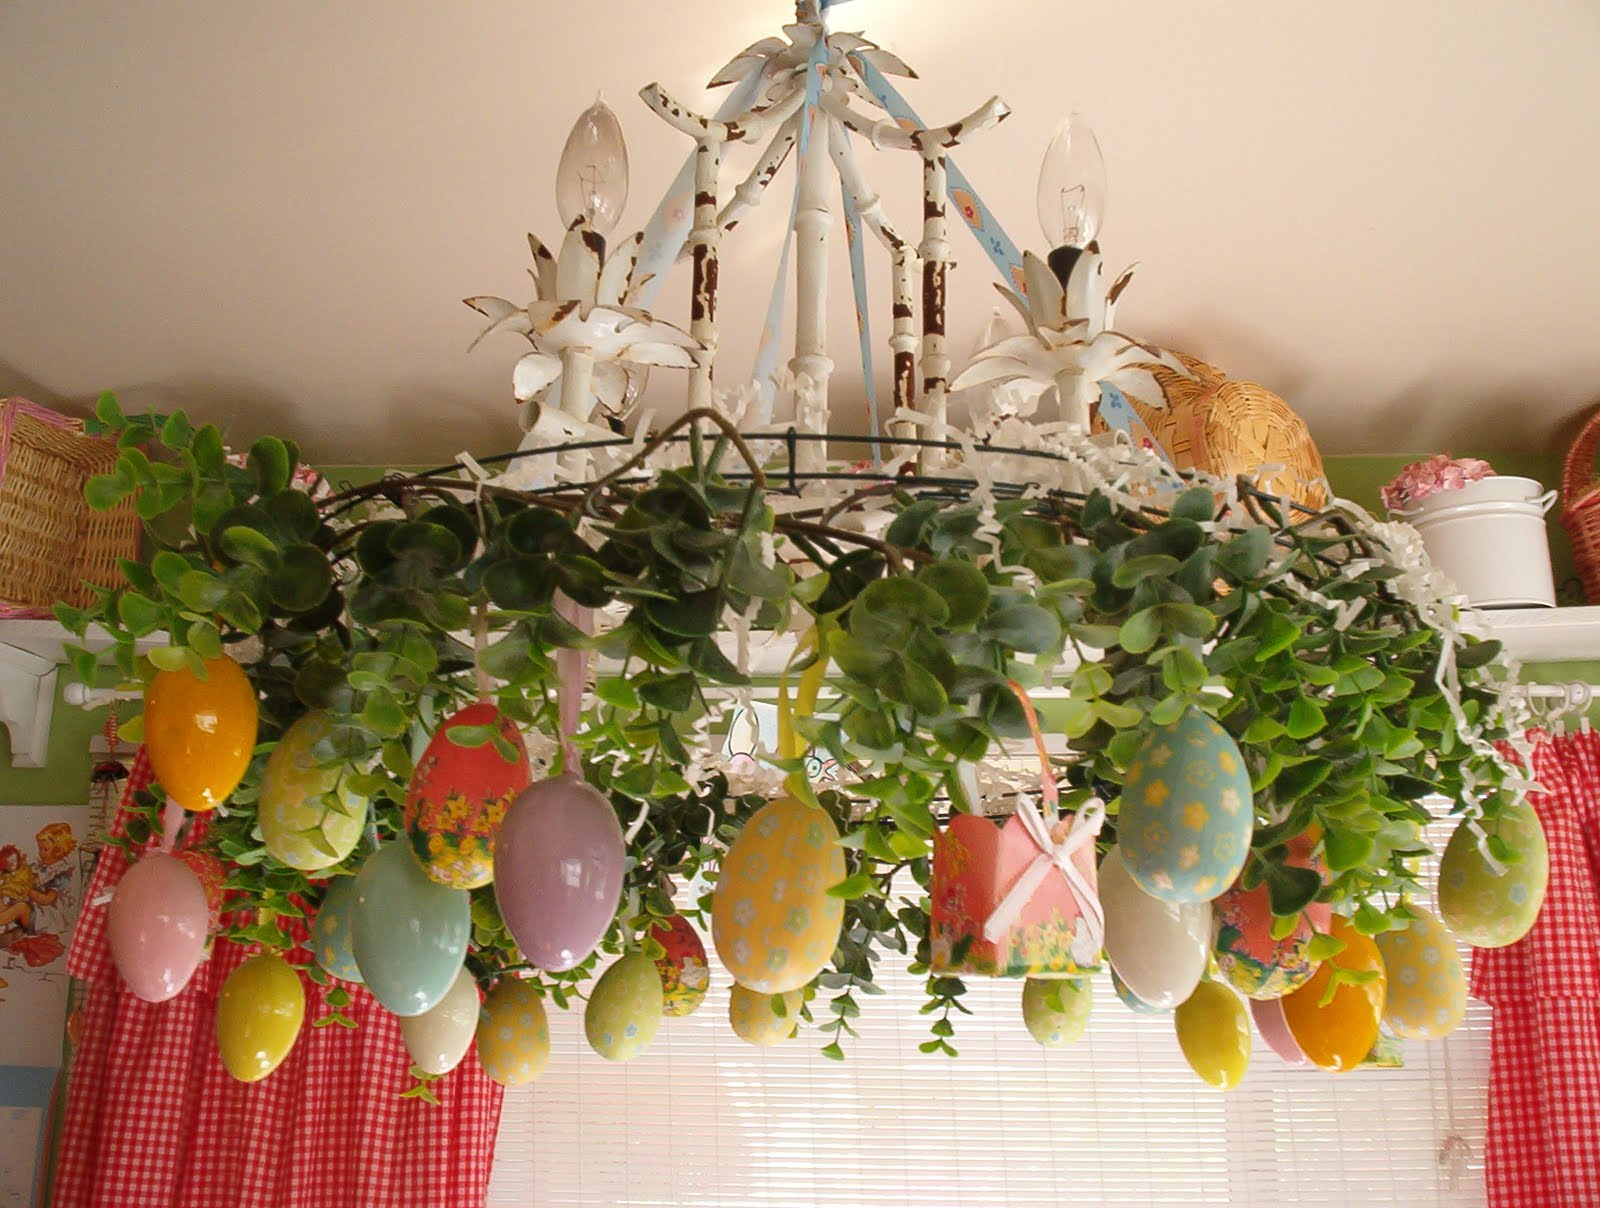 Easter decorations 2017 grasscloth wallpaper Images for easter decorations